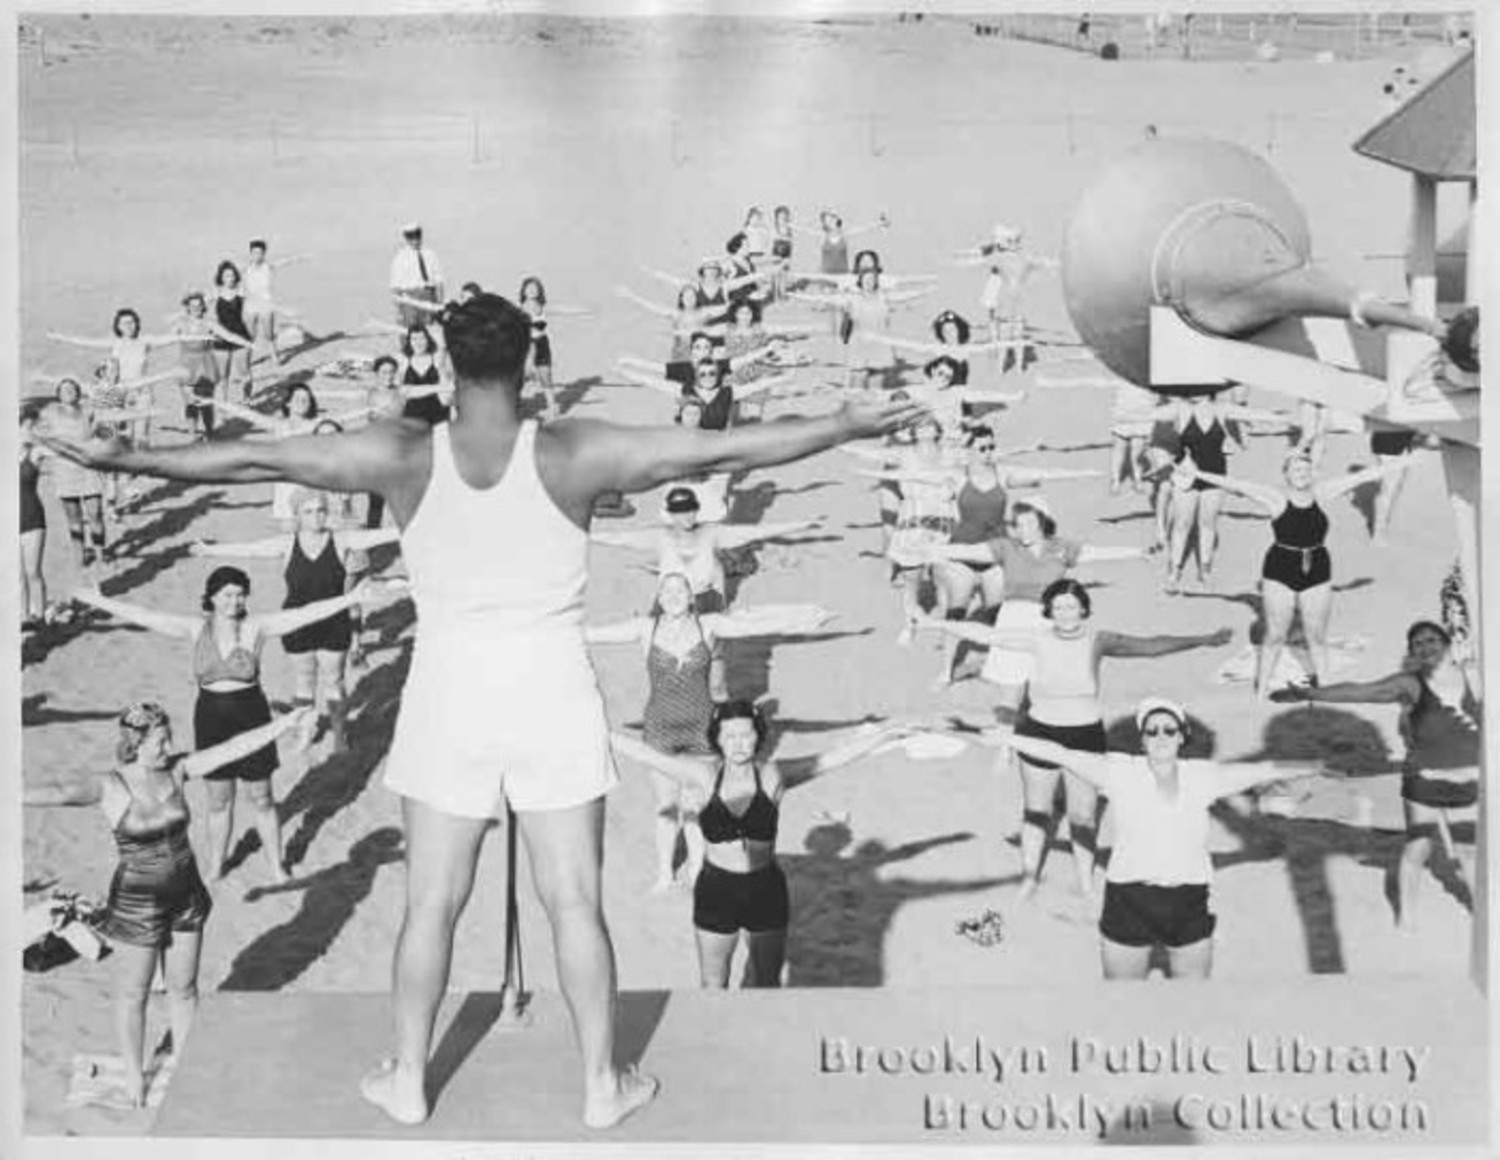 A 1950s workout.